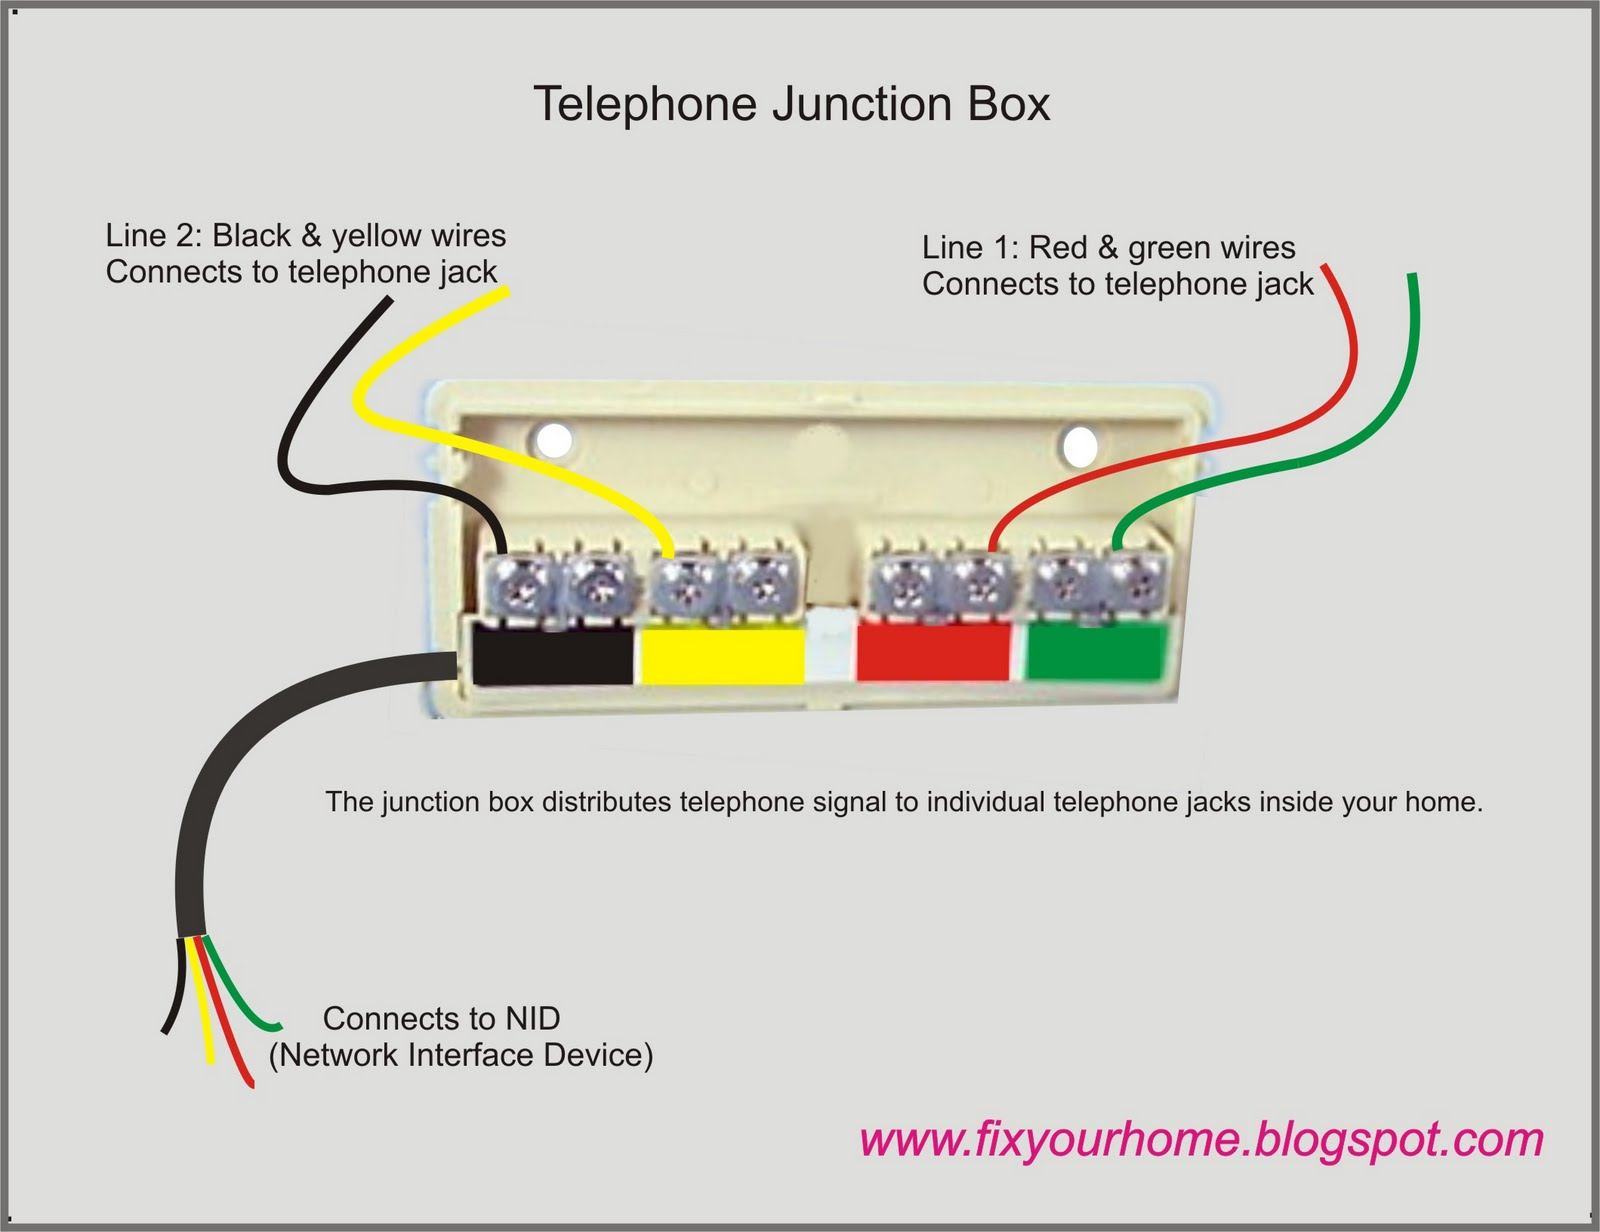 Home Wiring Color Chart Diagram Will Be A Thing Residentialwiringdiagramshomepng Telephone Junction Box Get Free Image Cable Wire